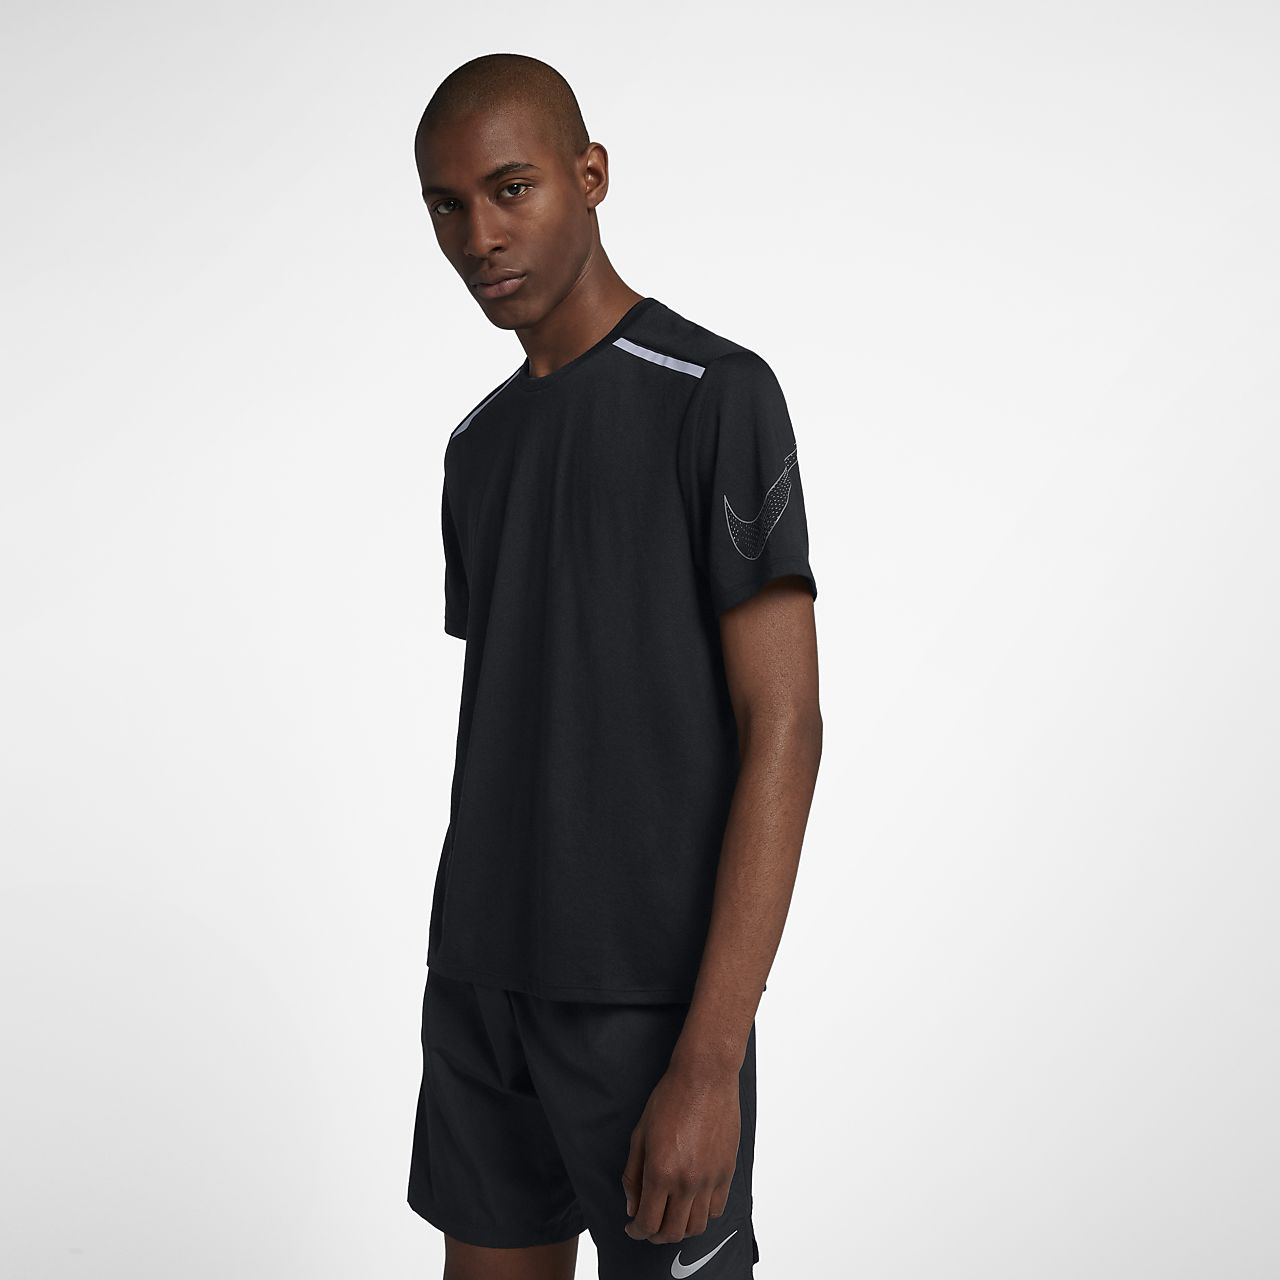 04c3c8ce22a6f0 Nike Rise 365 Men s Short-Sleeve Running Top. Nike.com AE